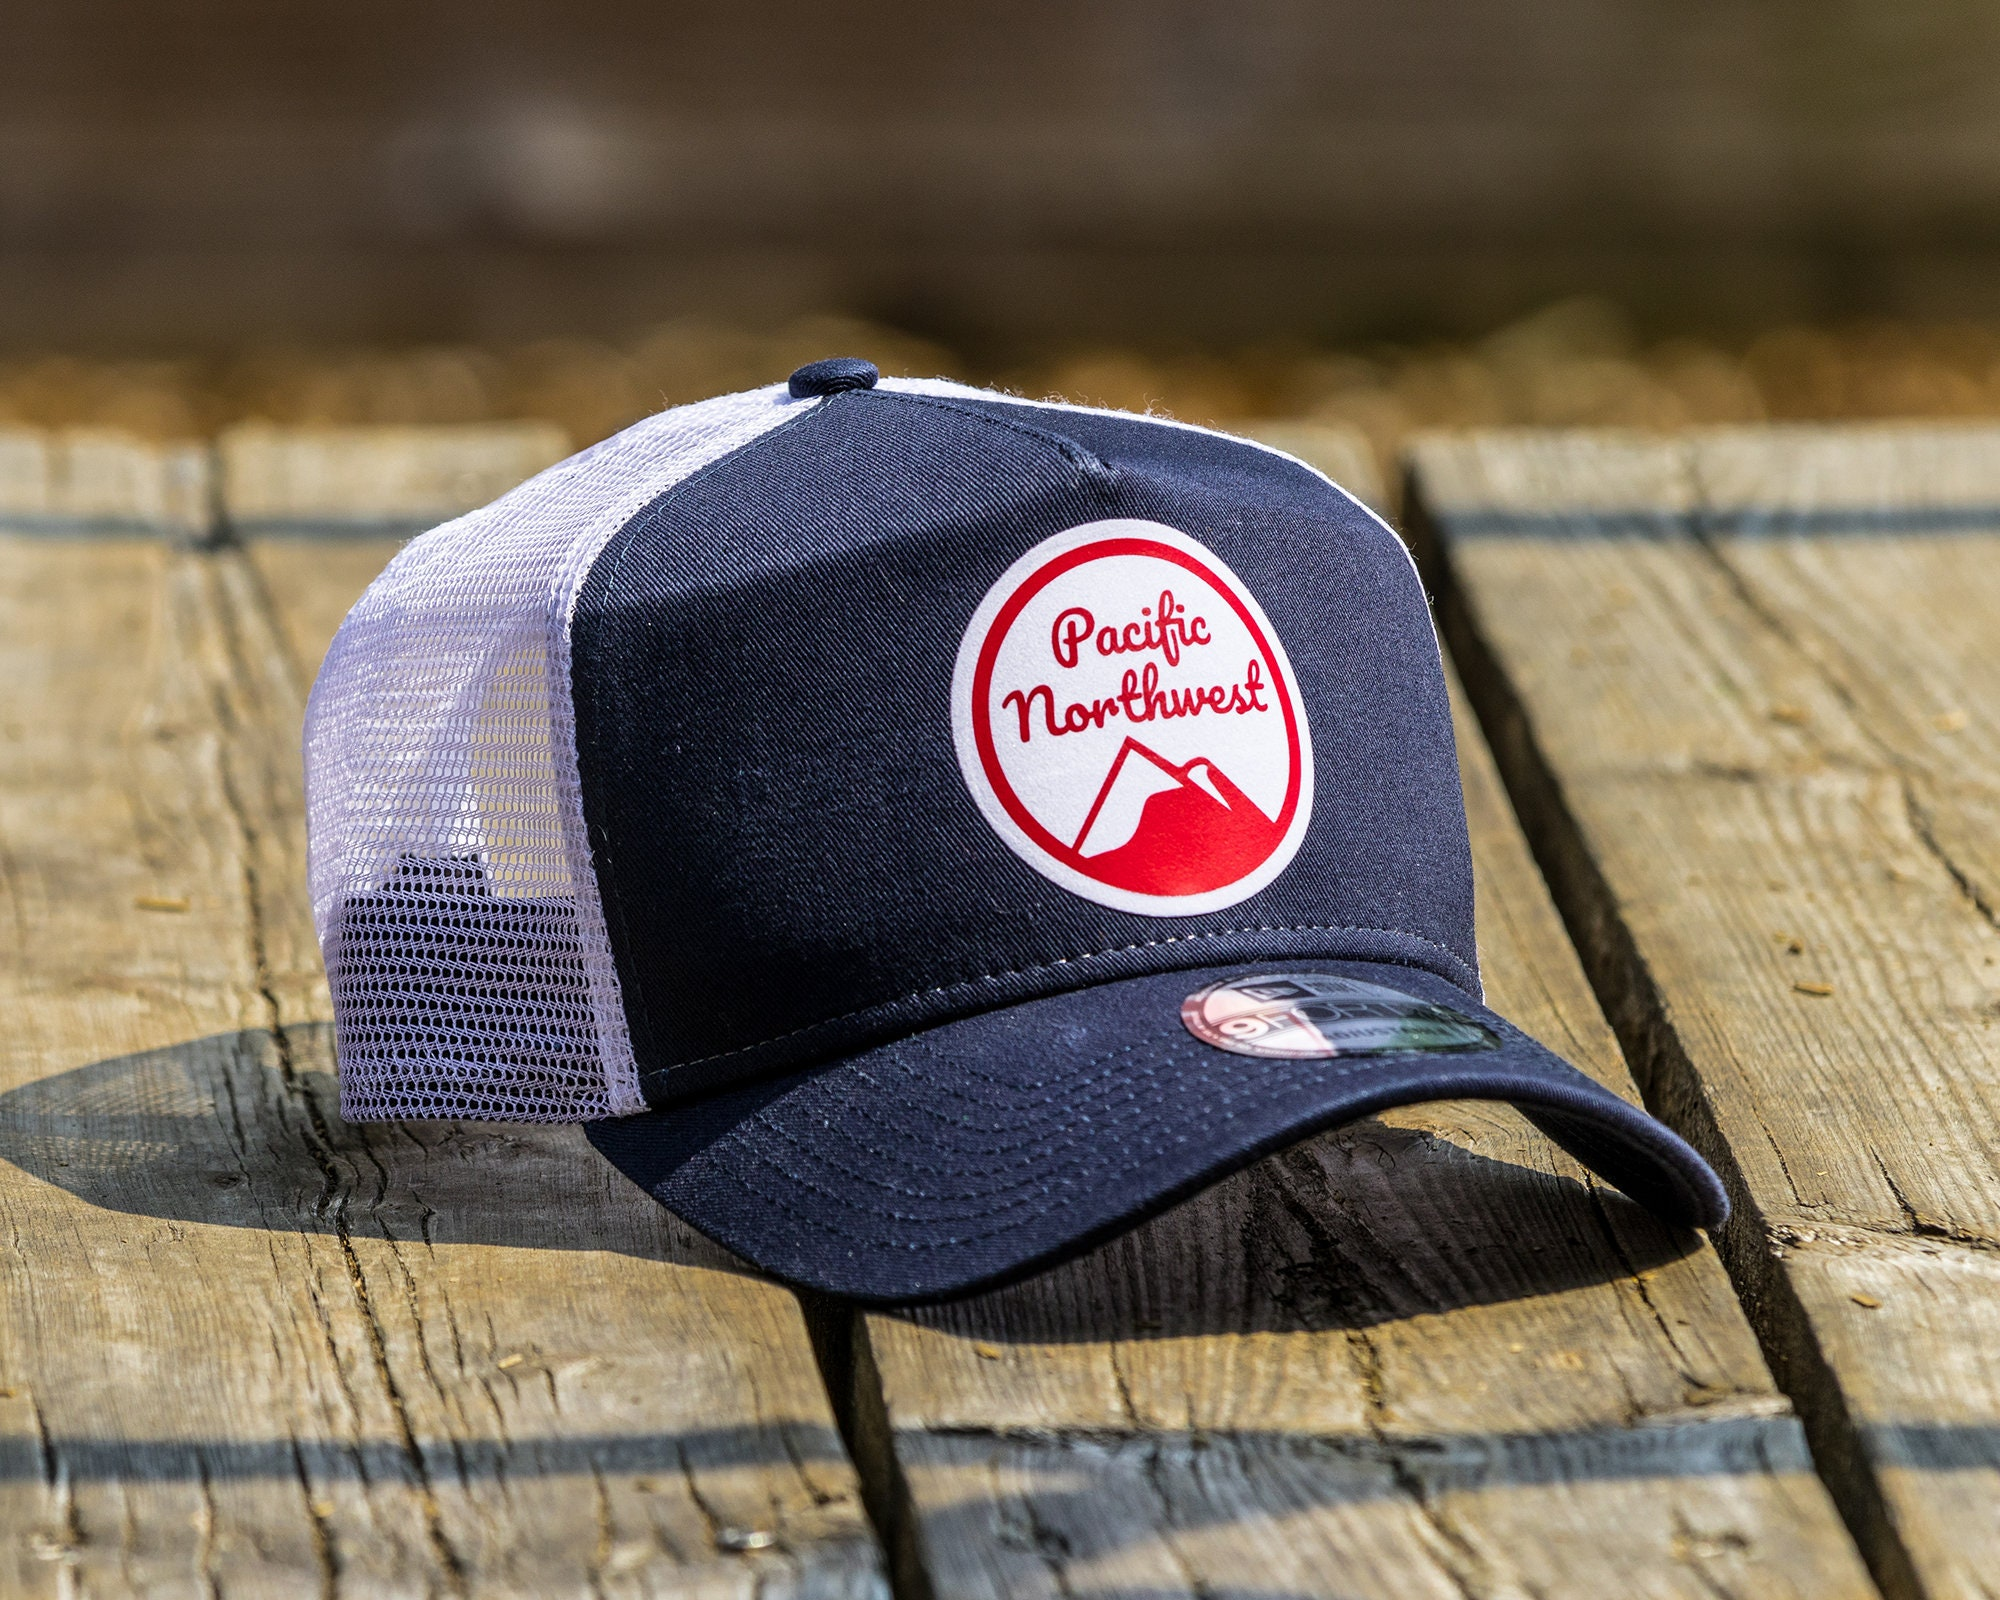 Custom Trucker Hats With Patch